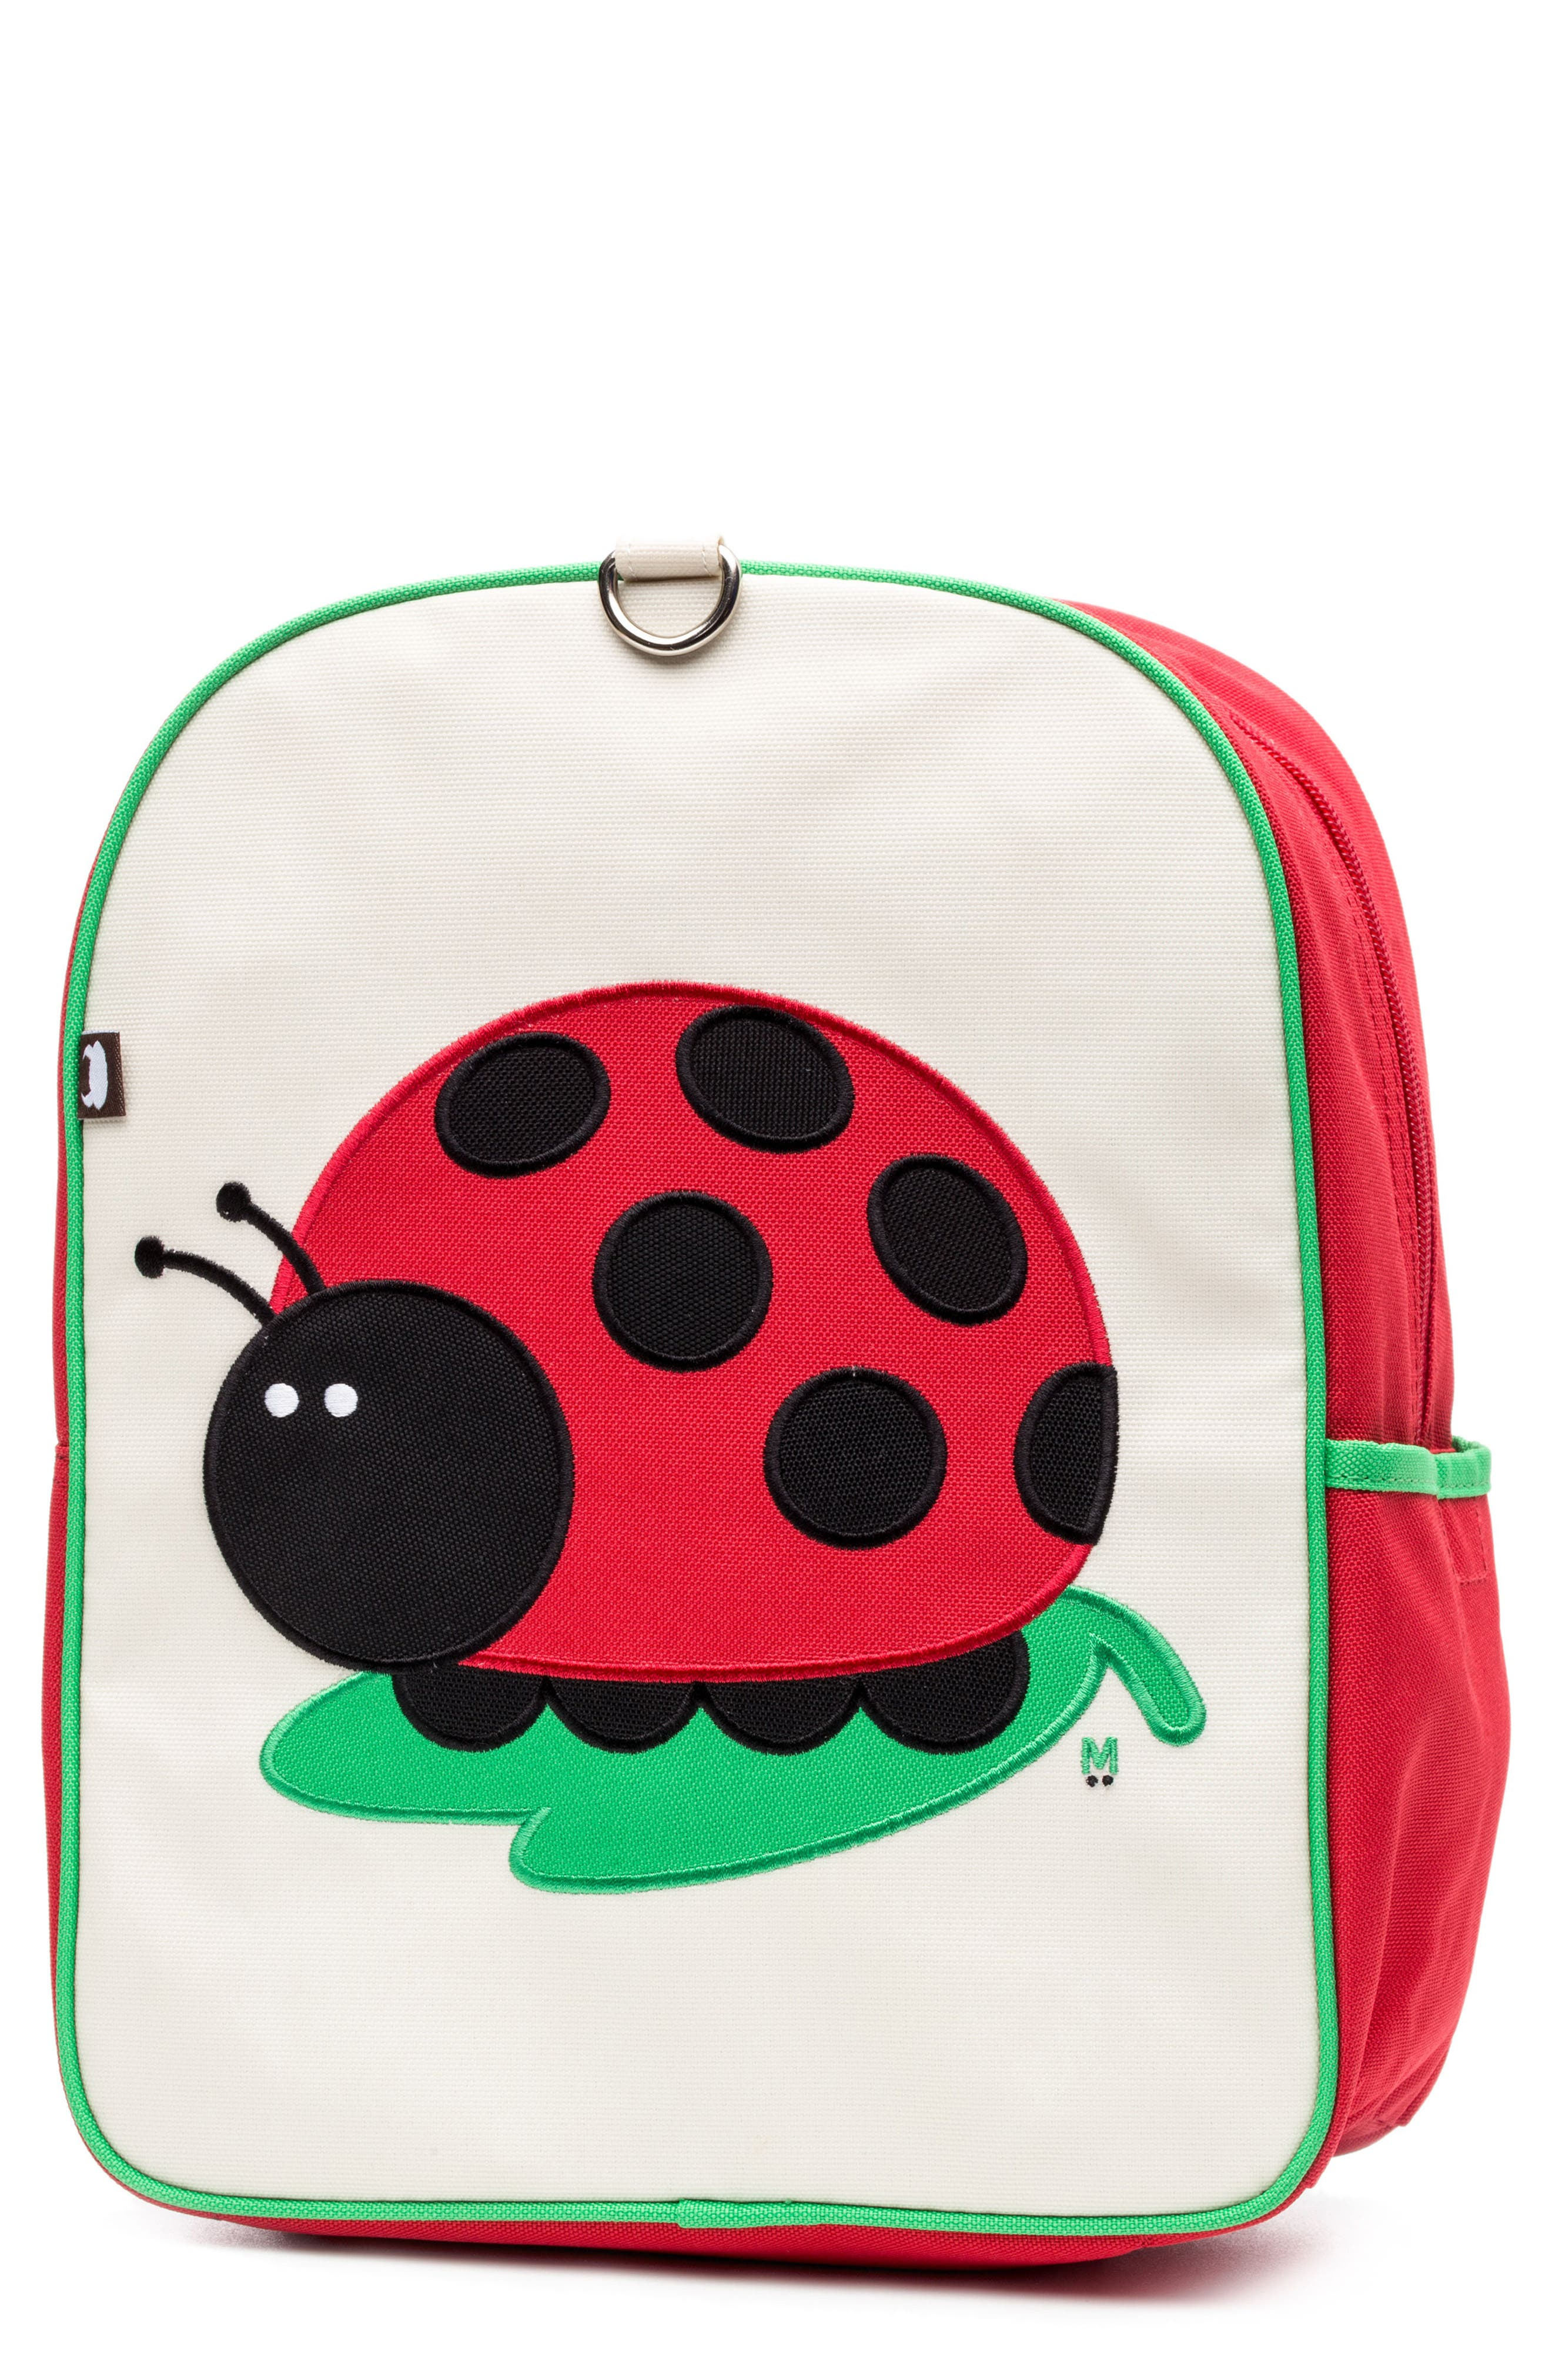 Little Kid Backpack,                         Main,                         color, JUJU THE LADYBUG